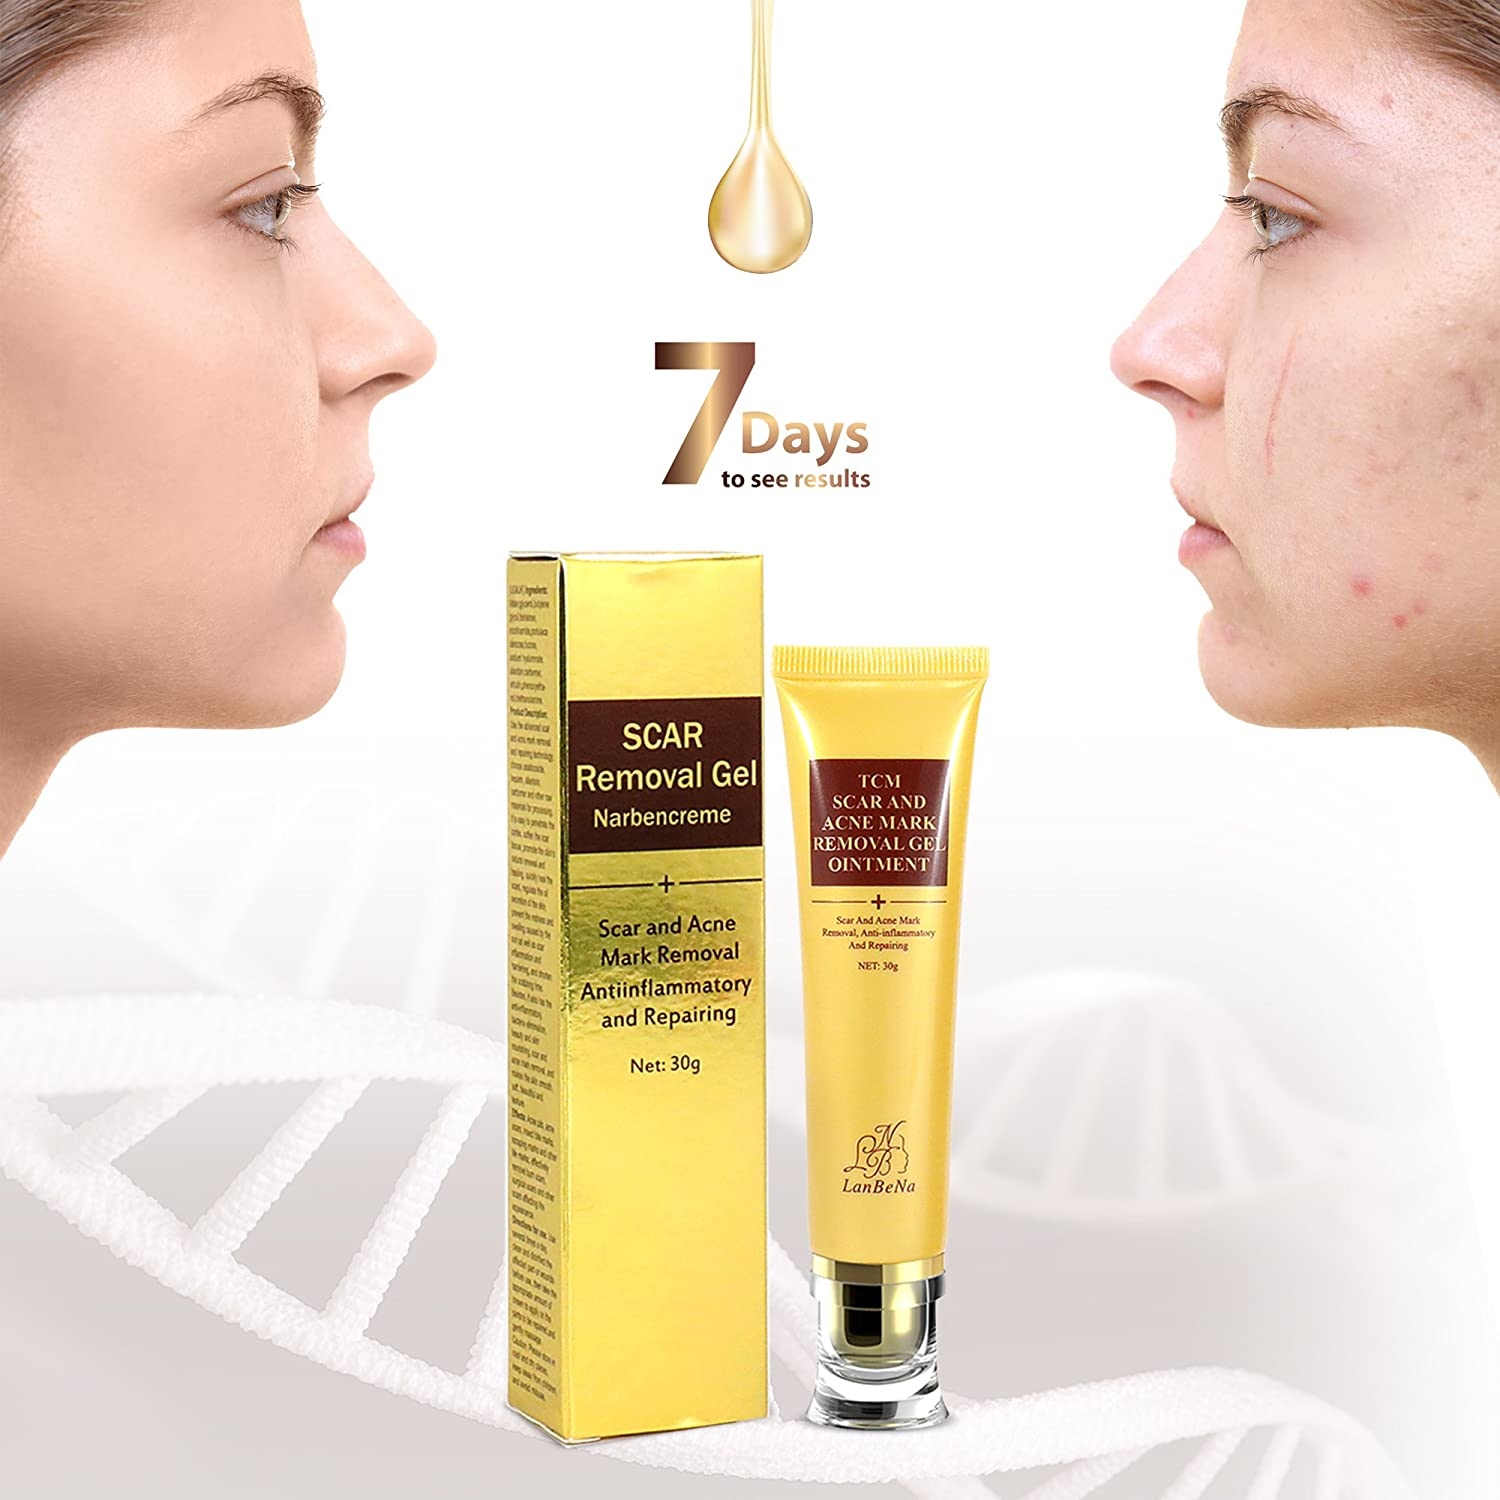 Scar Removal Cream Treatment Serum Away Gel For Snail 309 Body Face Burns C Section Old Surgical Scars 100 Proven Safe Effective